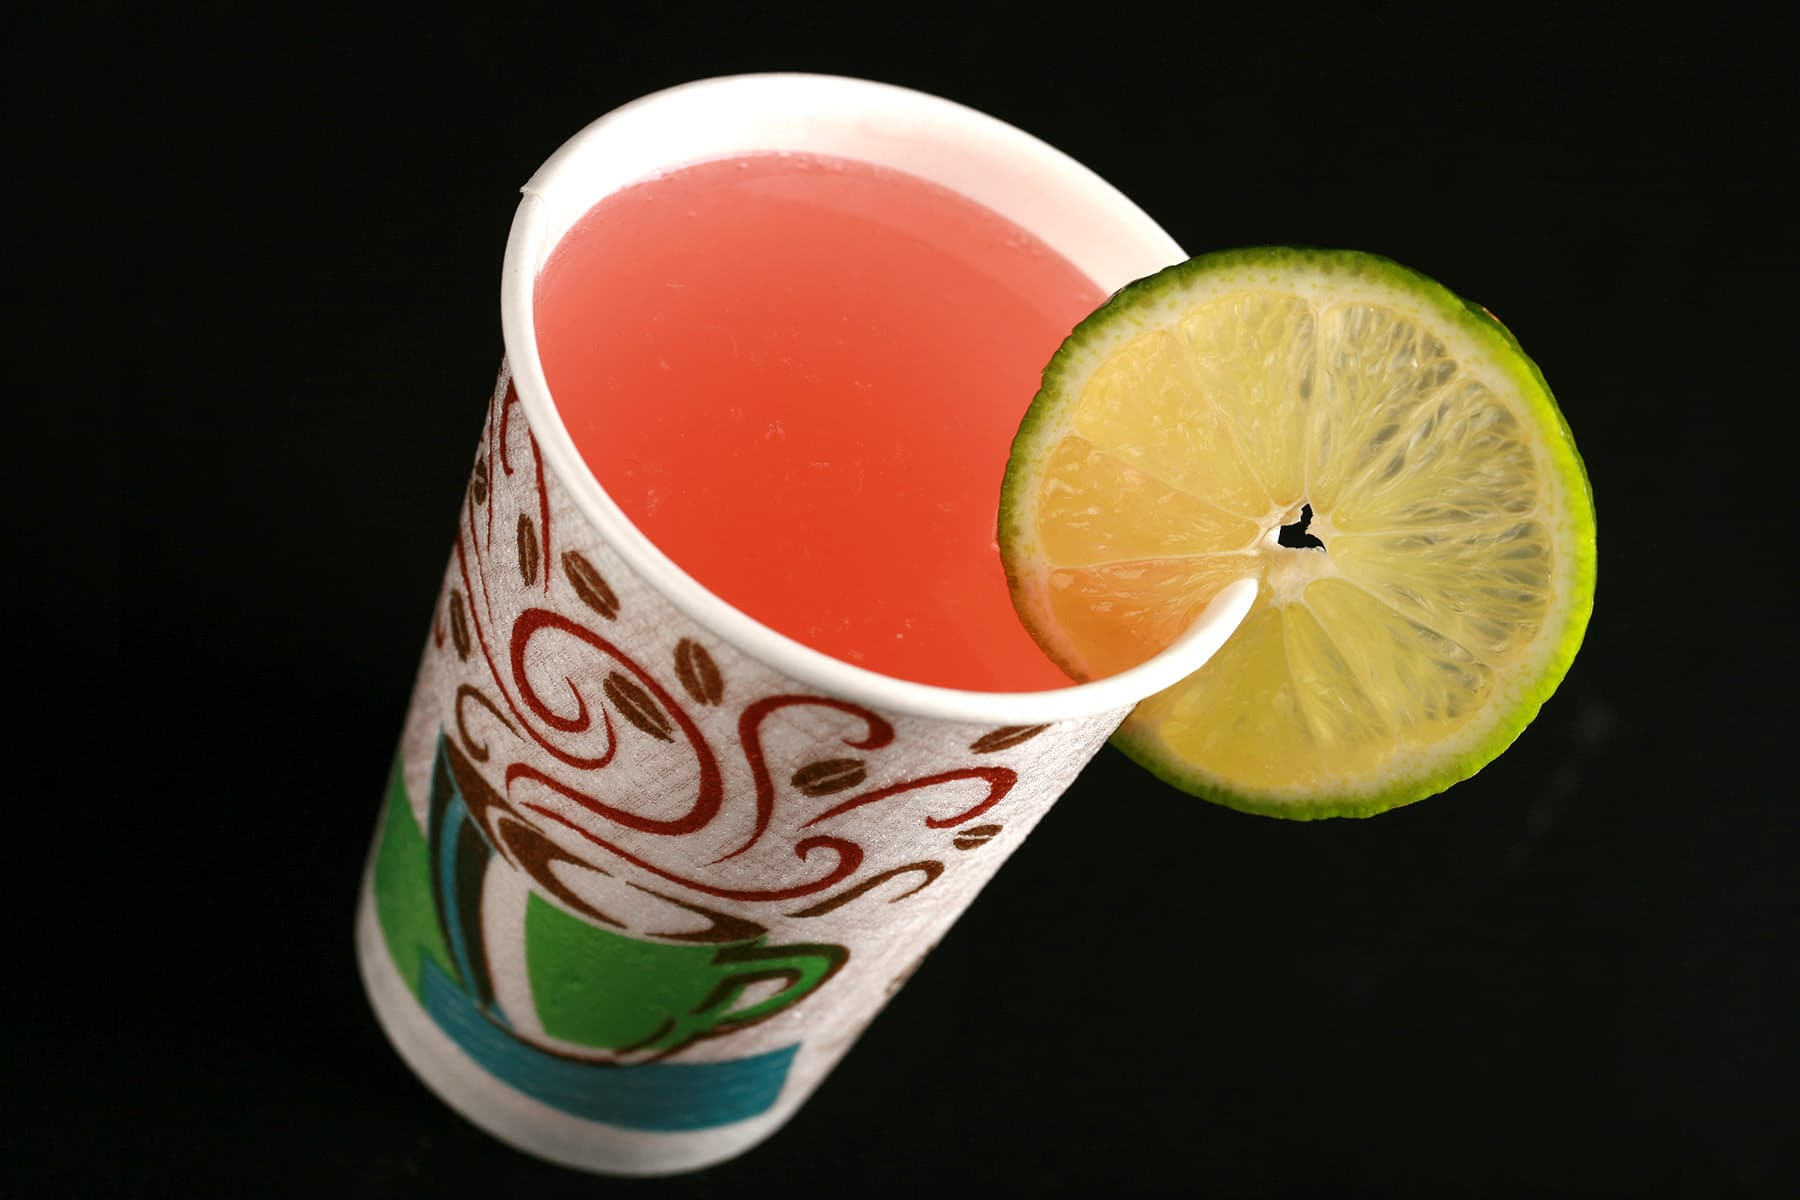 The Drinking In LA - a light pink fizzy cocktail in a hotel room disposable coffee cup.  It is garnished with a slice of lime.